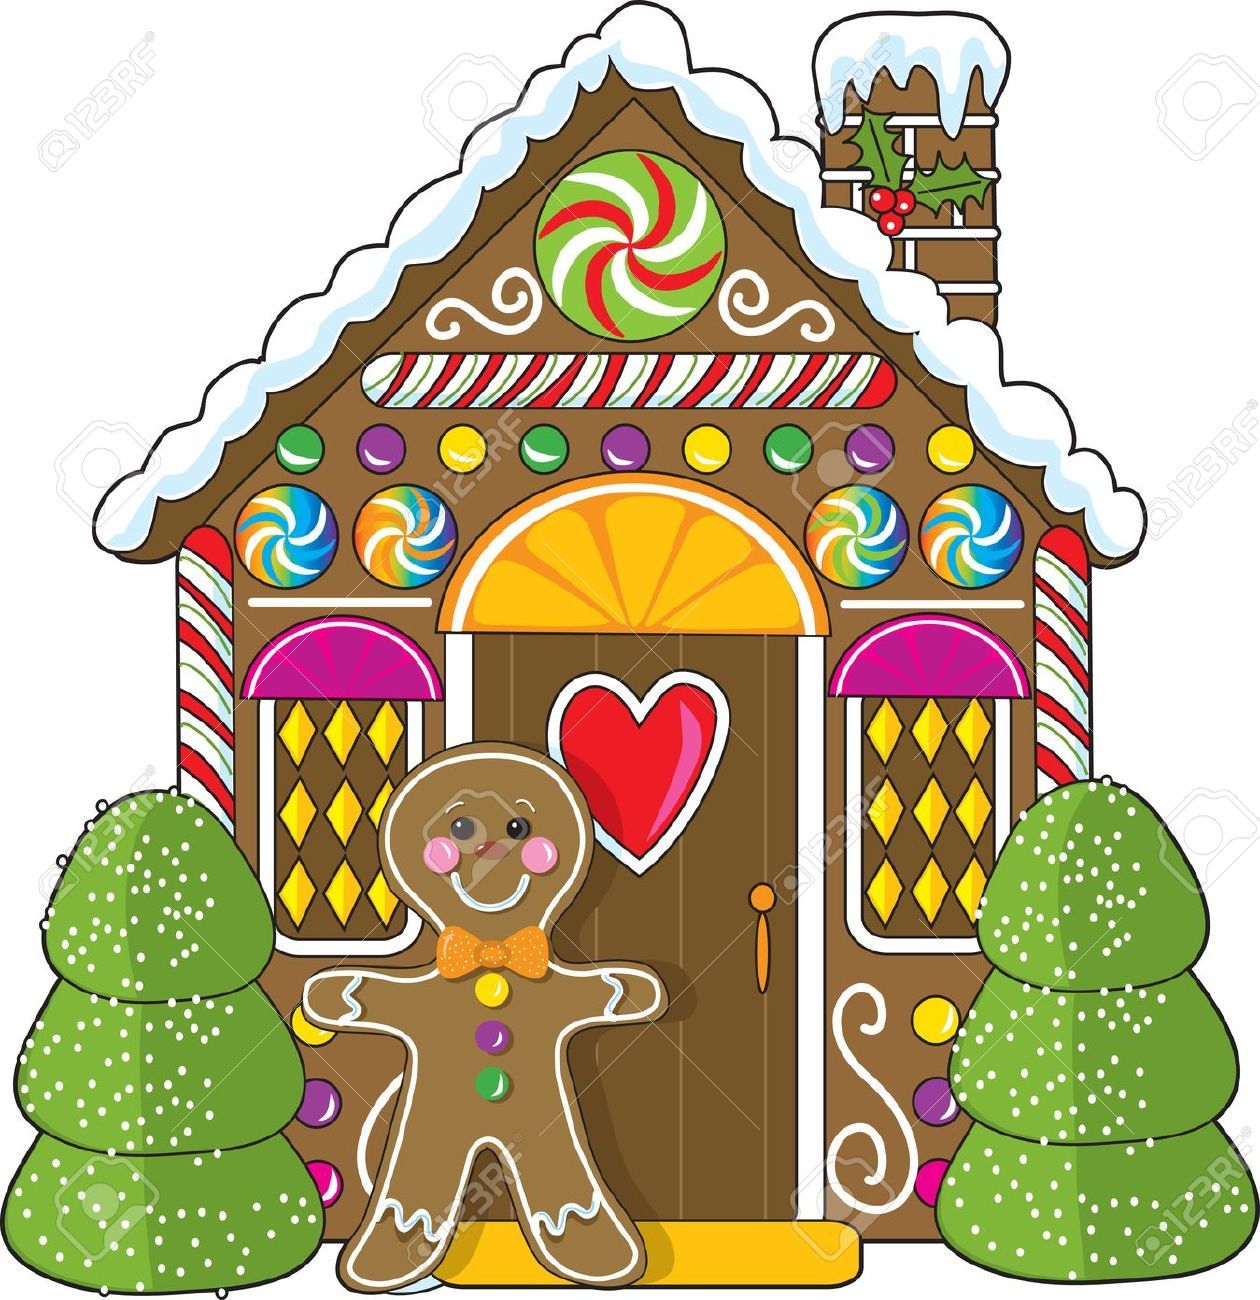 Gingerbread House Decorations Clipart.